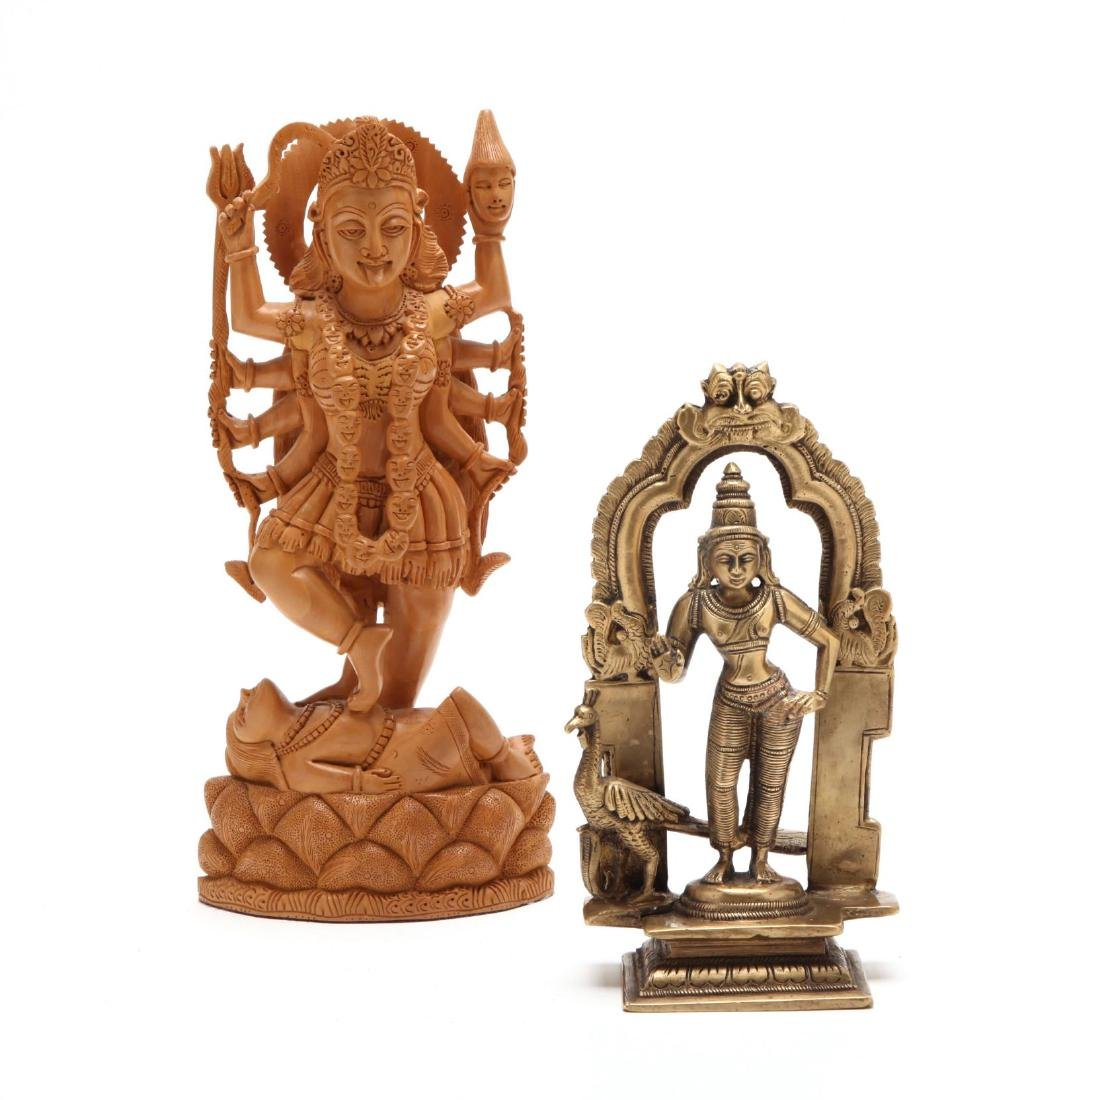 Two Vintage Hindu Sculptures